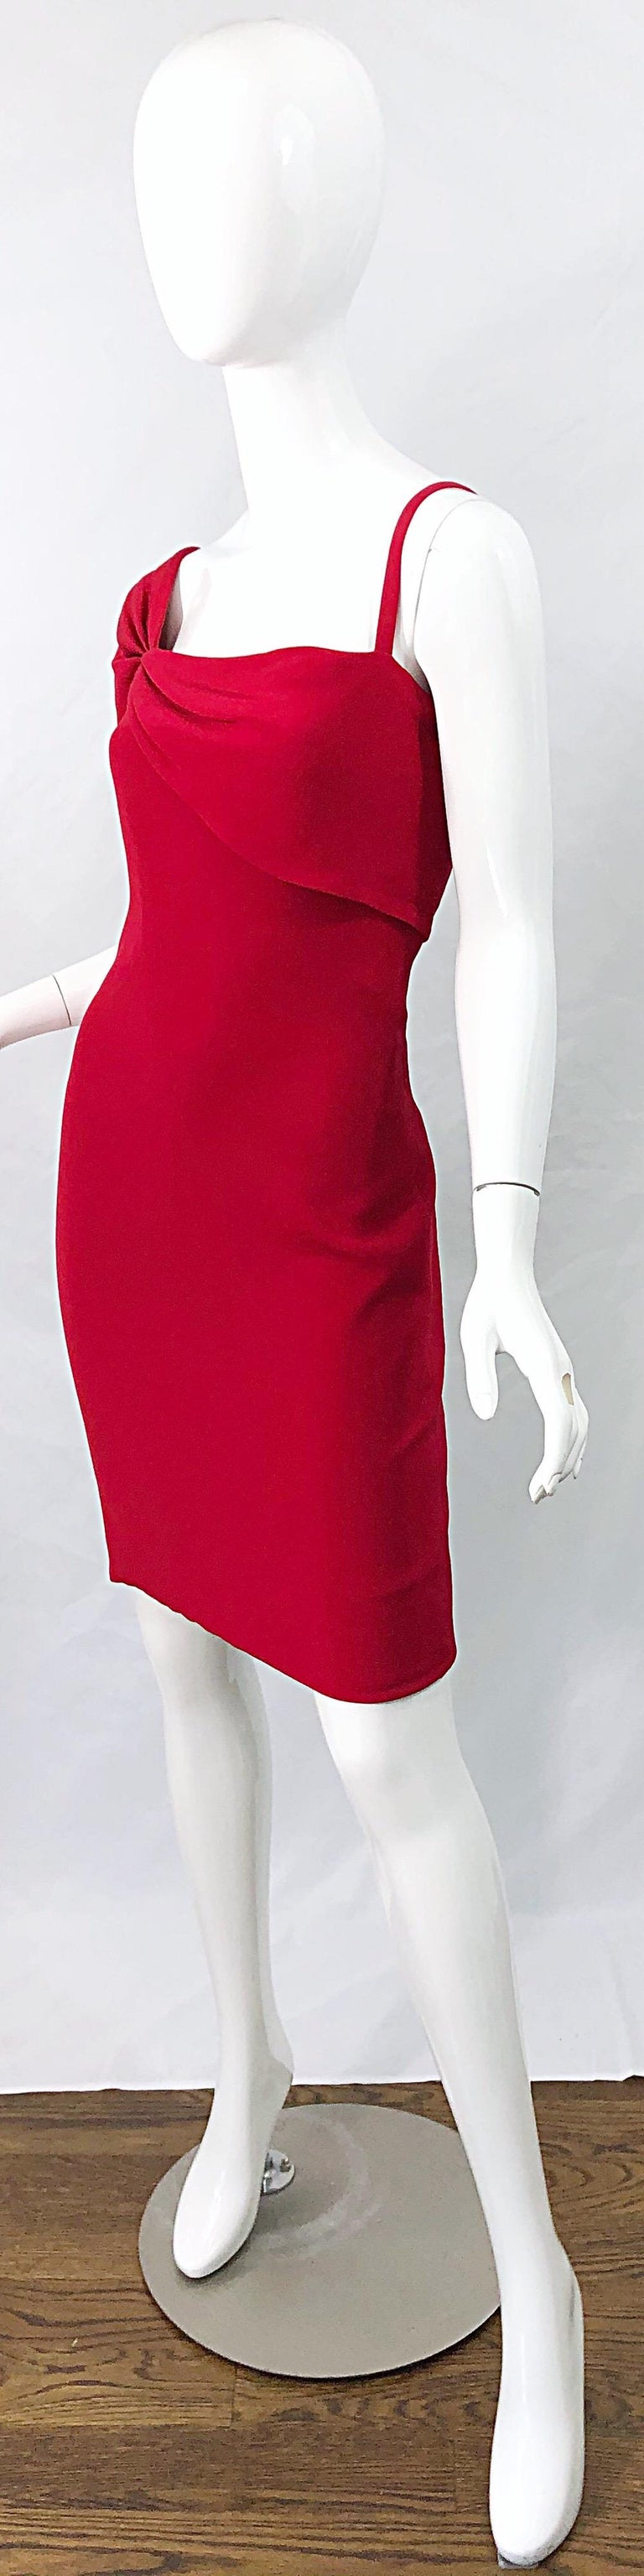 Women's Vintage Bill Blass 1990s Size 6 Lipstick Red One Shoulder 90s Silk Dress For Sale